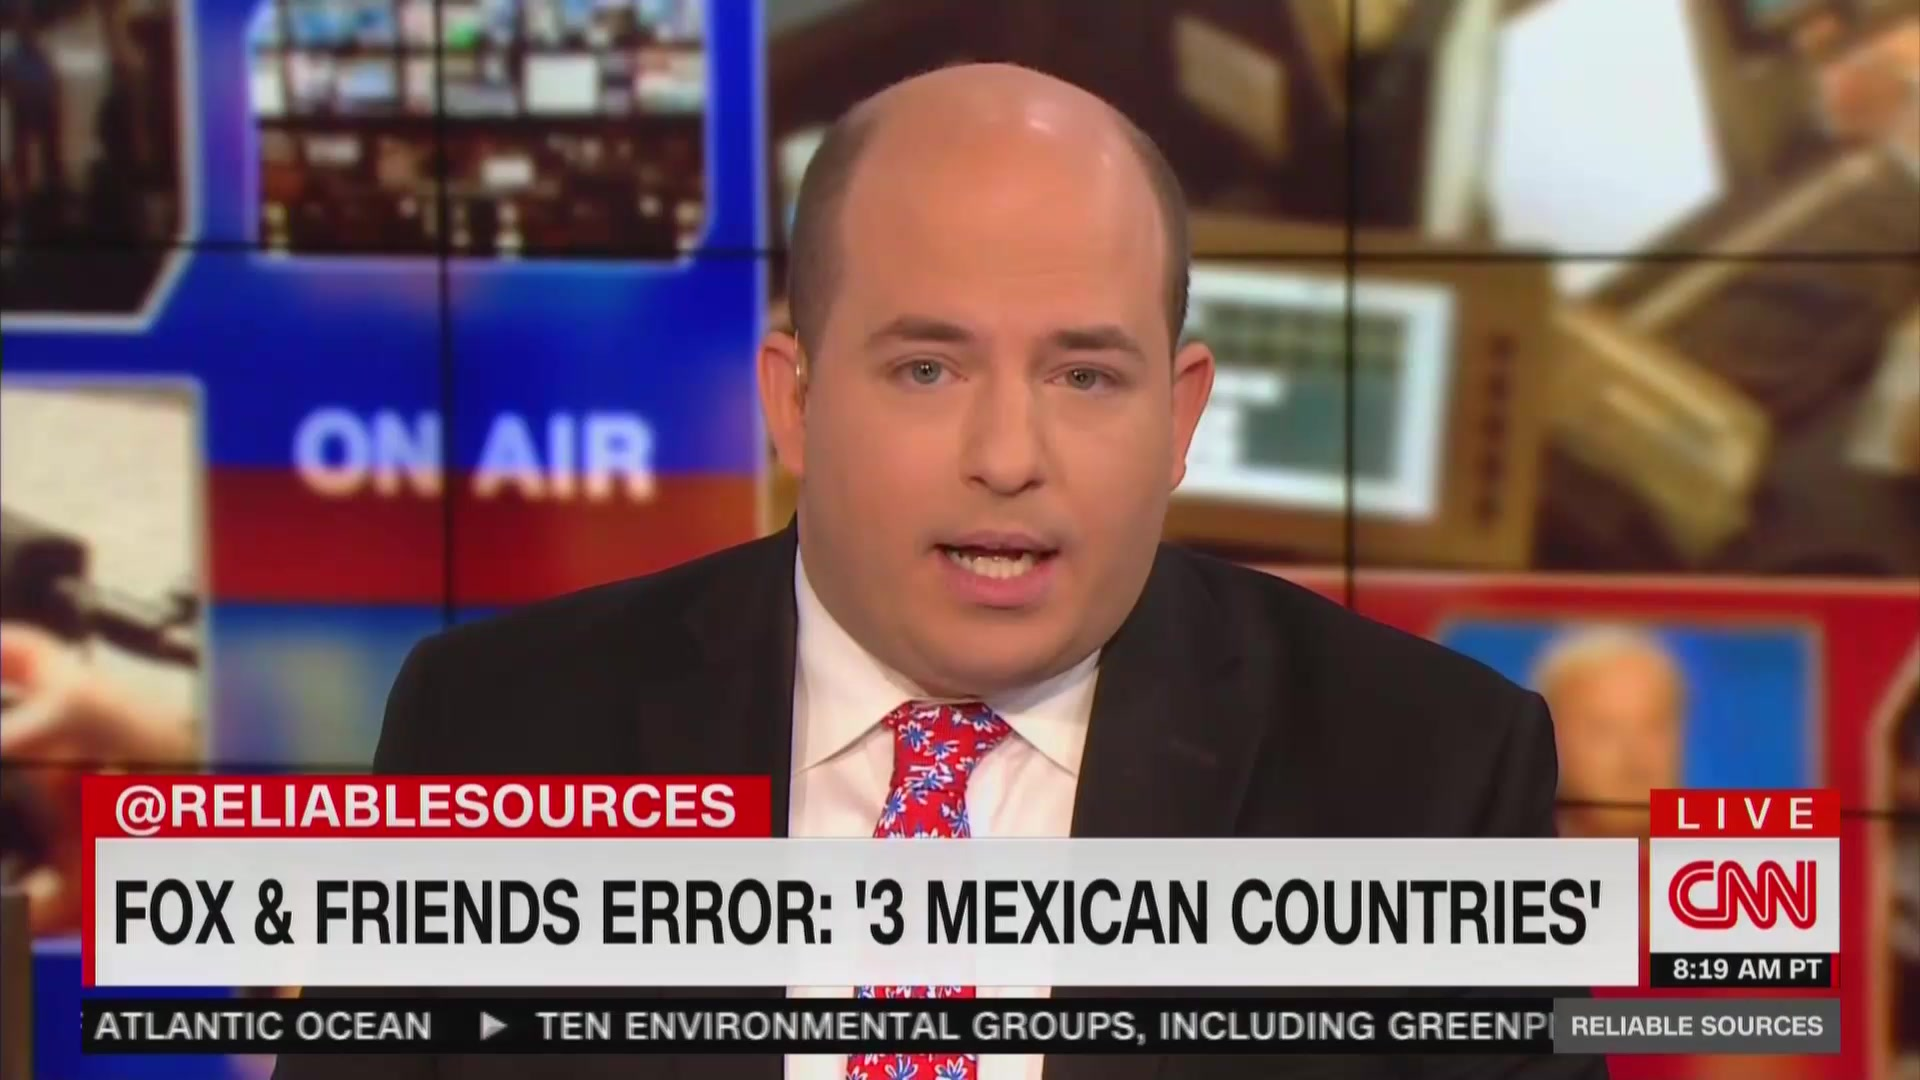 CNN's Stelter Reacts to Fox's '3 Mexican Countries' Flub: 'I Don't Know What Is Going on Over There'